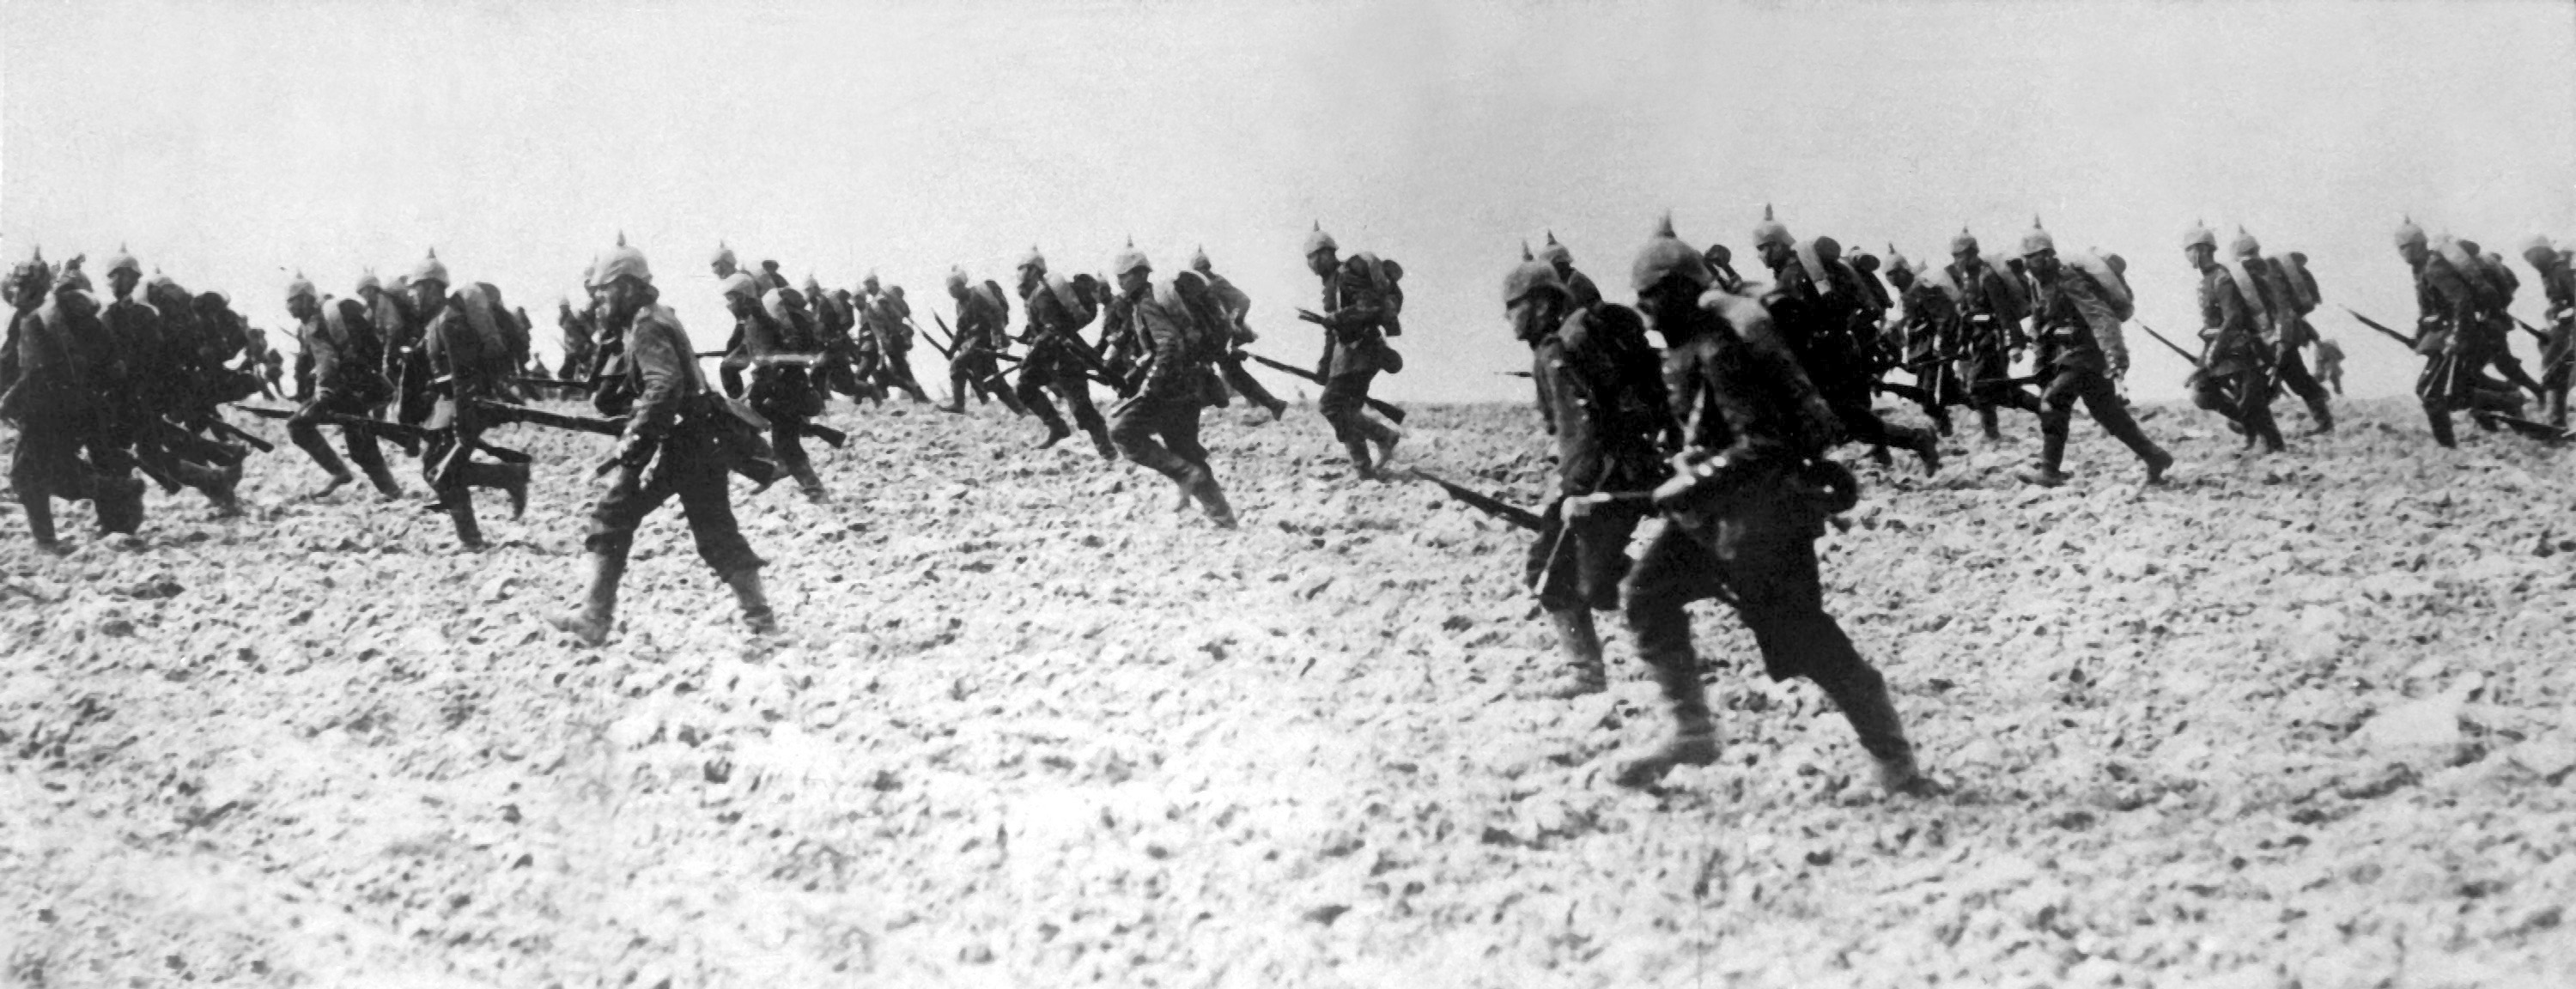 the important battle in the run of the first world war The battle of the somme, also known as the somme offensive, was one of the largest battles of the first world war fought between july 1 and november 1, 1916, near the somme river in france, it was also one of the bloodiest military battles in history.